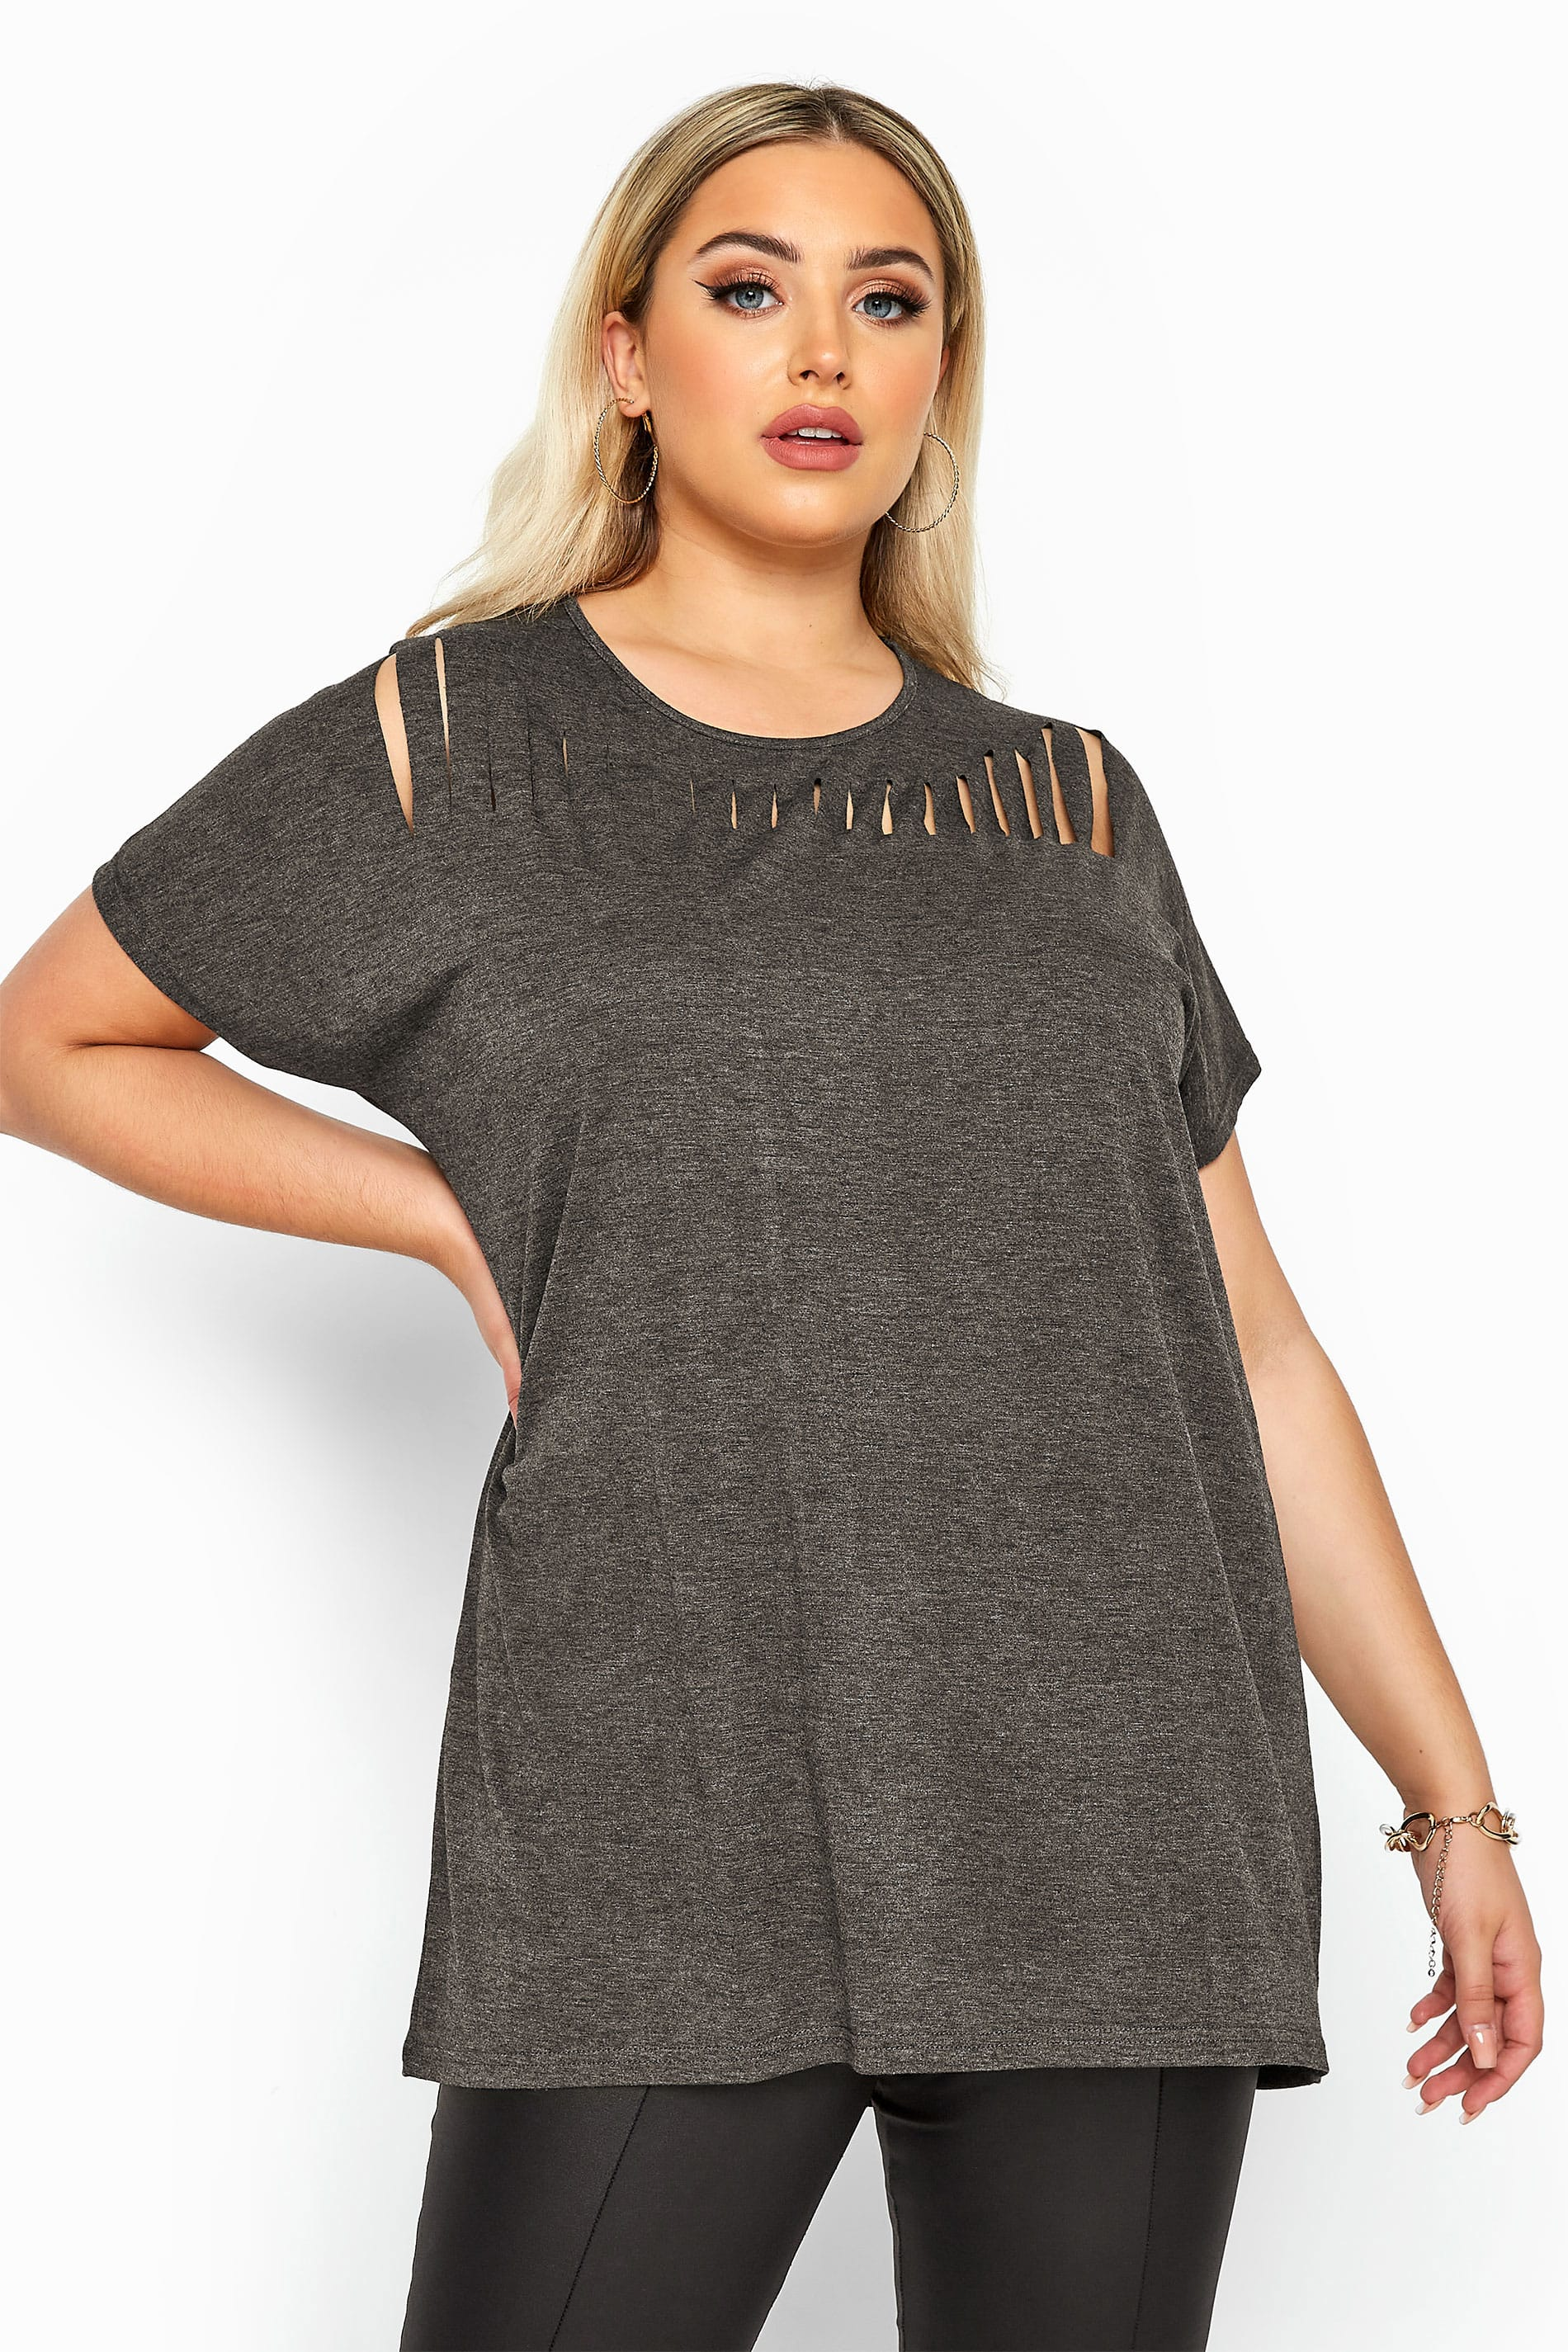 Charcoal Grey Marl Laser Cut Jersey Top